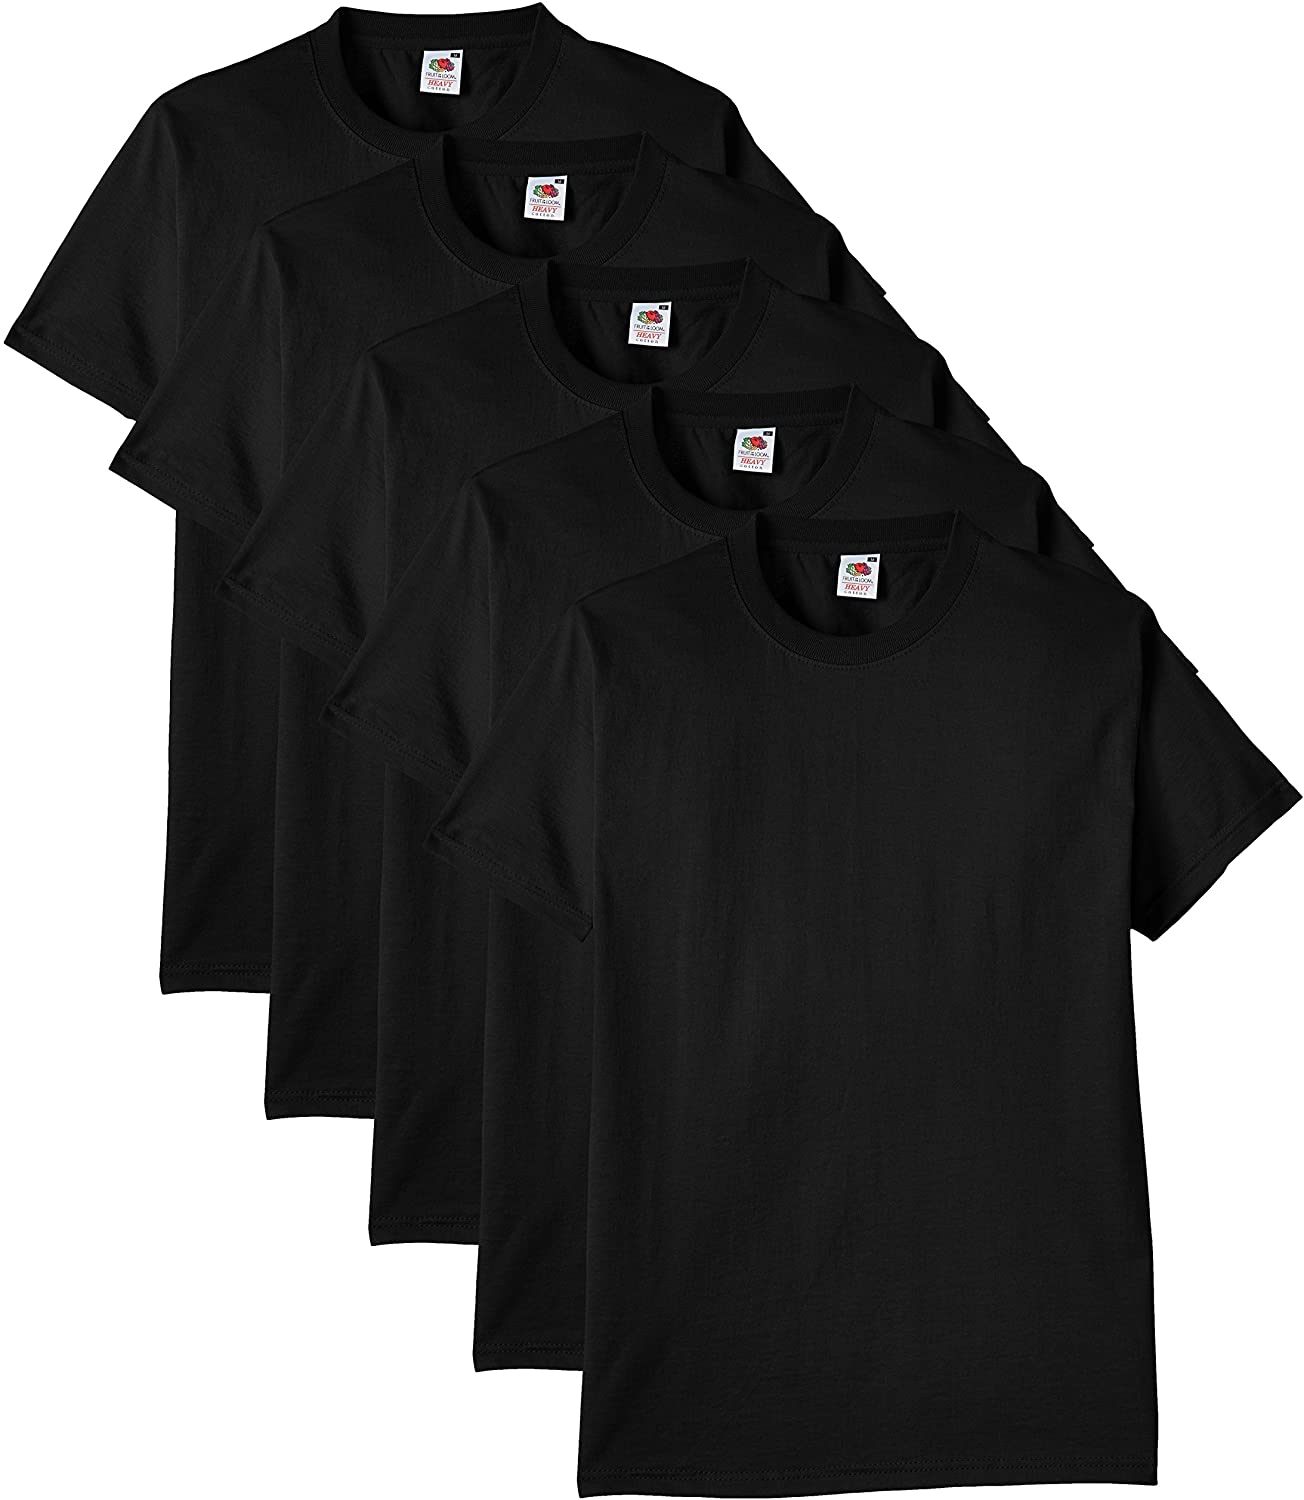 Fruit of the Loom Camiseta (Pack de 5) para Hombre